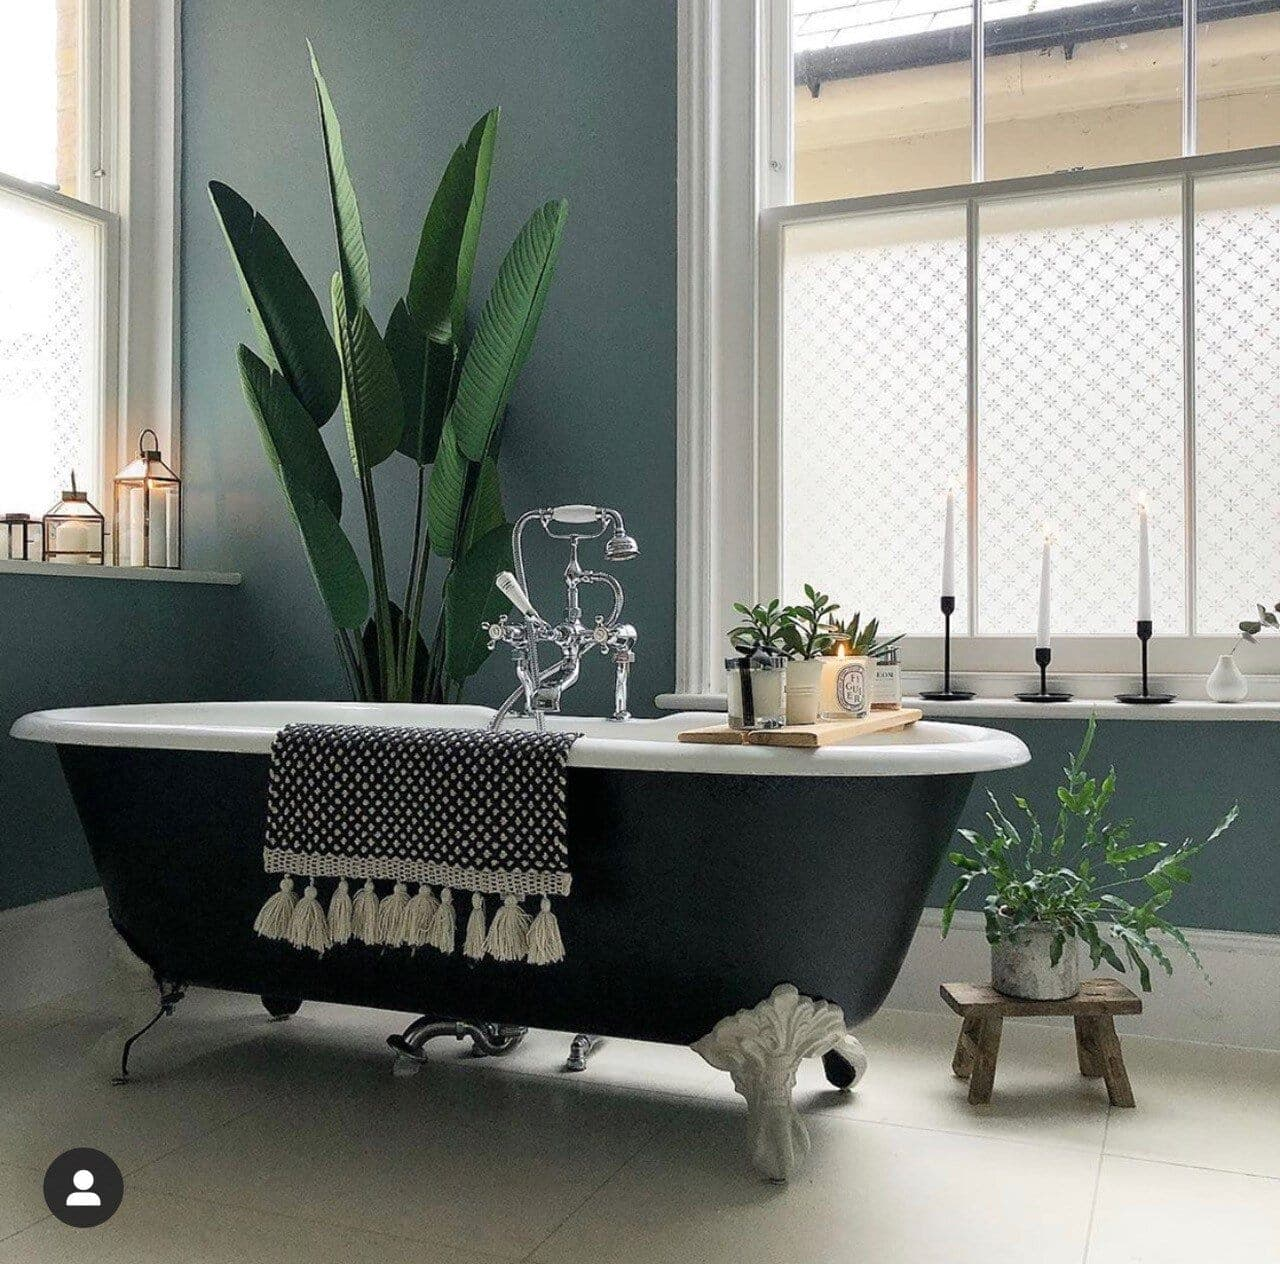 Ultra stylish black bath. Instagram: @styletheclutter